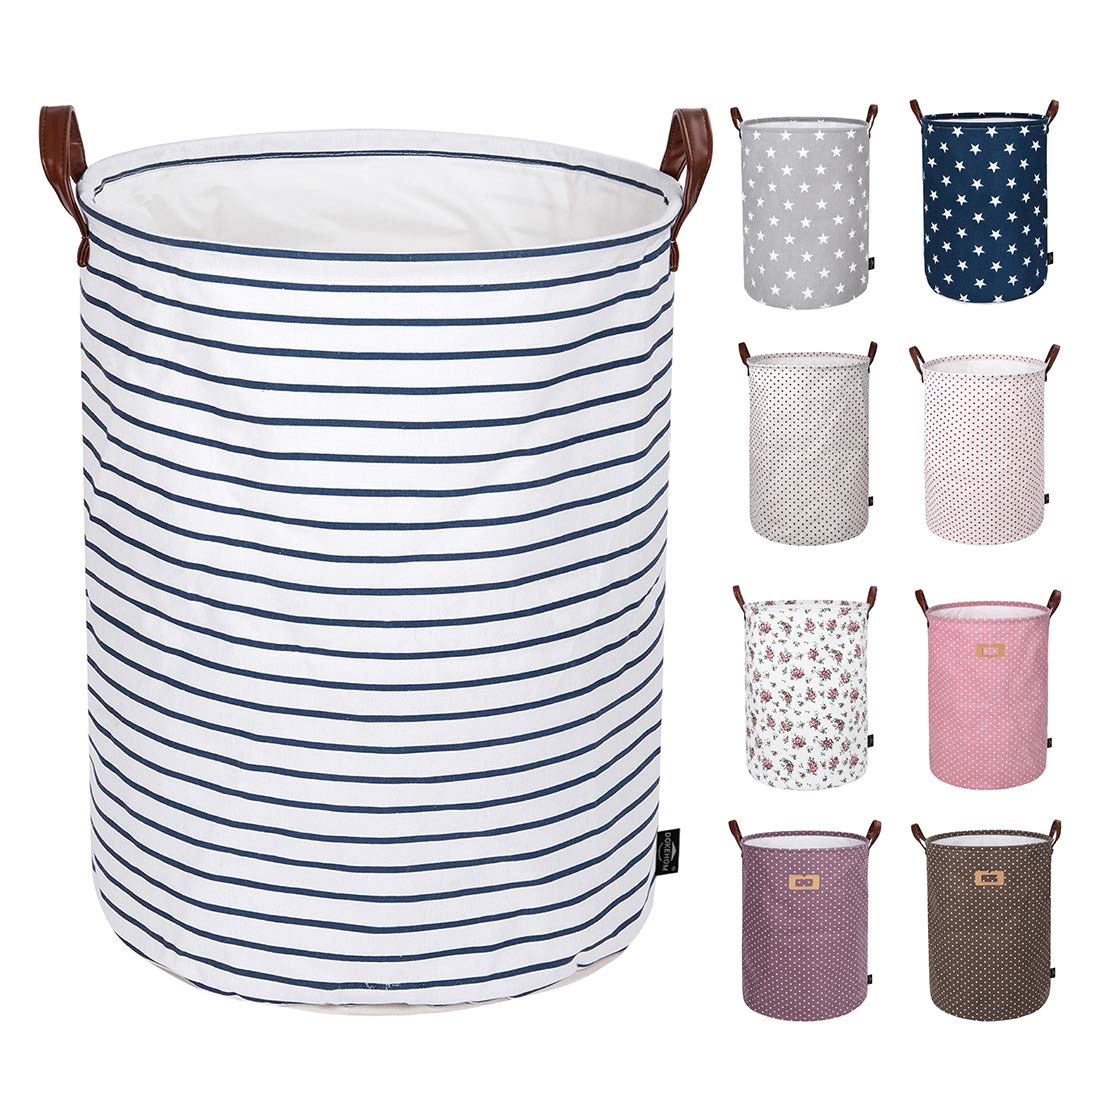 DOKEHOM 19-Inches Thickened Large Laundry Basket -(9 Colors) with Durable Leather Handle, Drawstring Waterproof Round Cotton Linen Collapsible Storage Basket (Blue Strips, L) by DOKEHOM